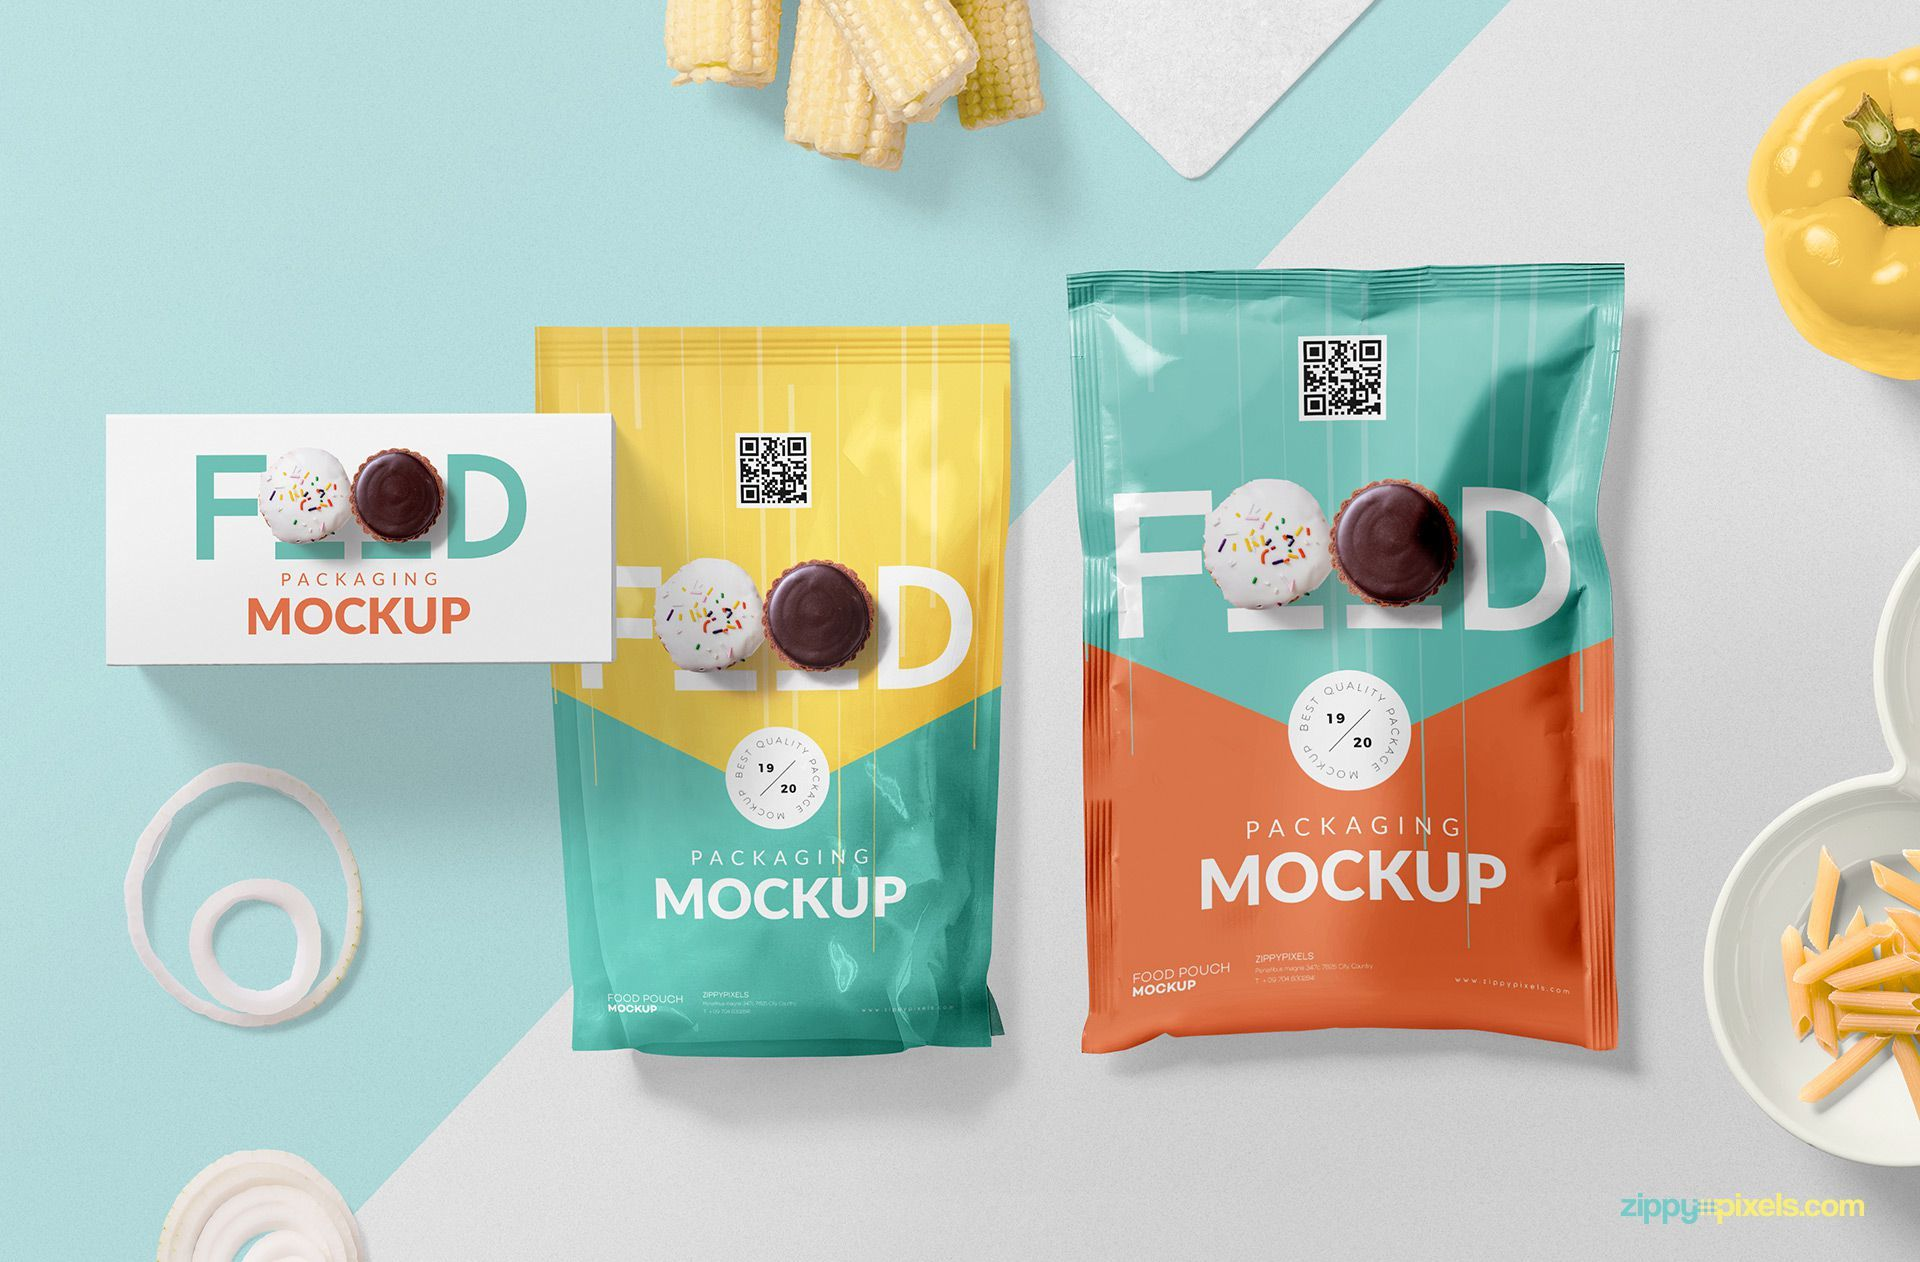 Download Awesome Food Packaging Mockup Free Psd Zippypixels Packaging Mockup Food Packaging Food Packaging Design